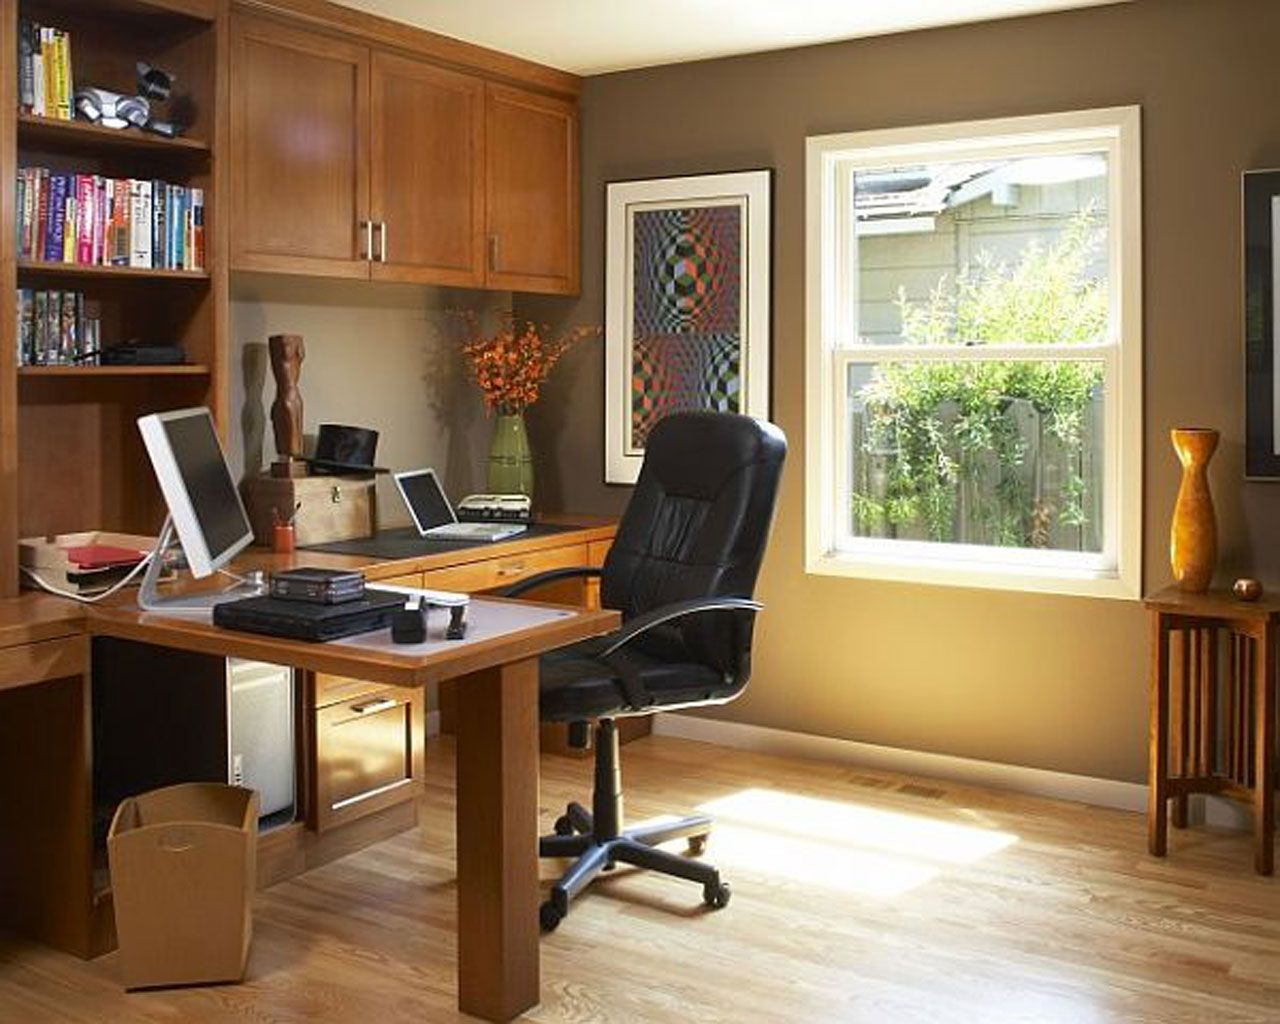 home office images efficient office furniture for home workspace 10 study or library. Black Bedroom Furniture Sets. Home Design Ideas